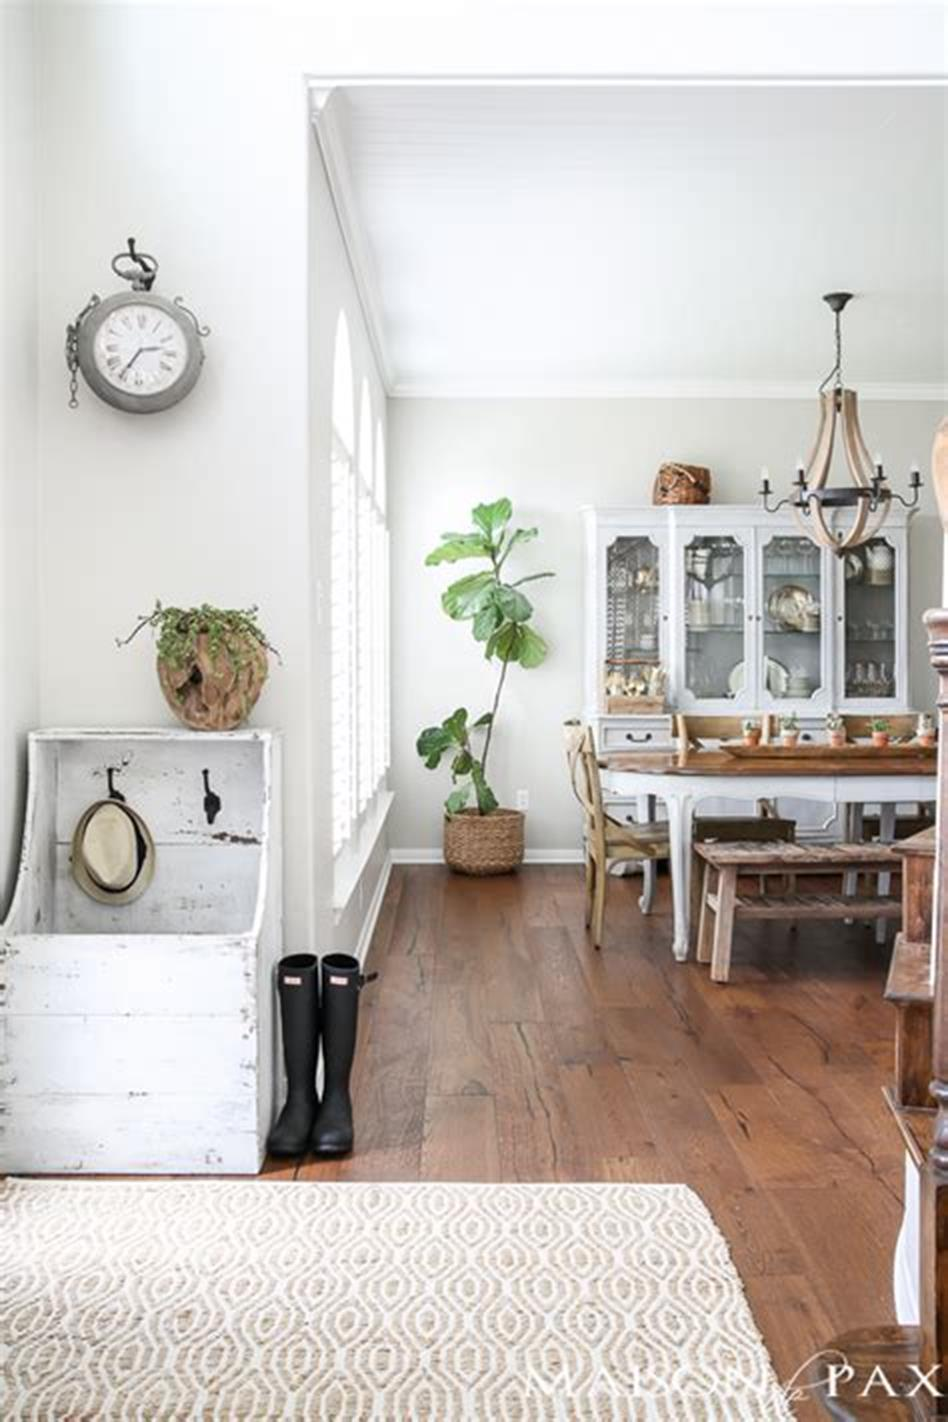 35 Stunning Spring Kitchen and Dining Room Decorating Ideas 2019 29